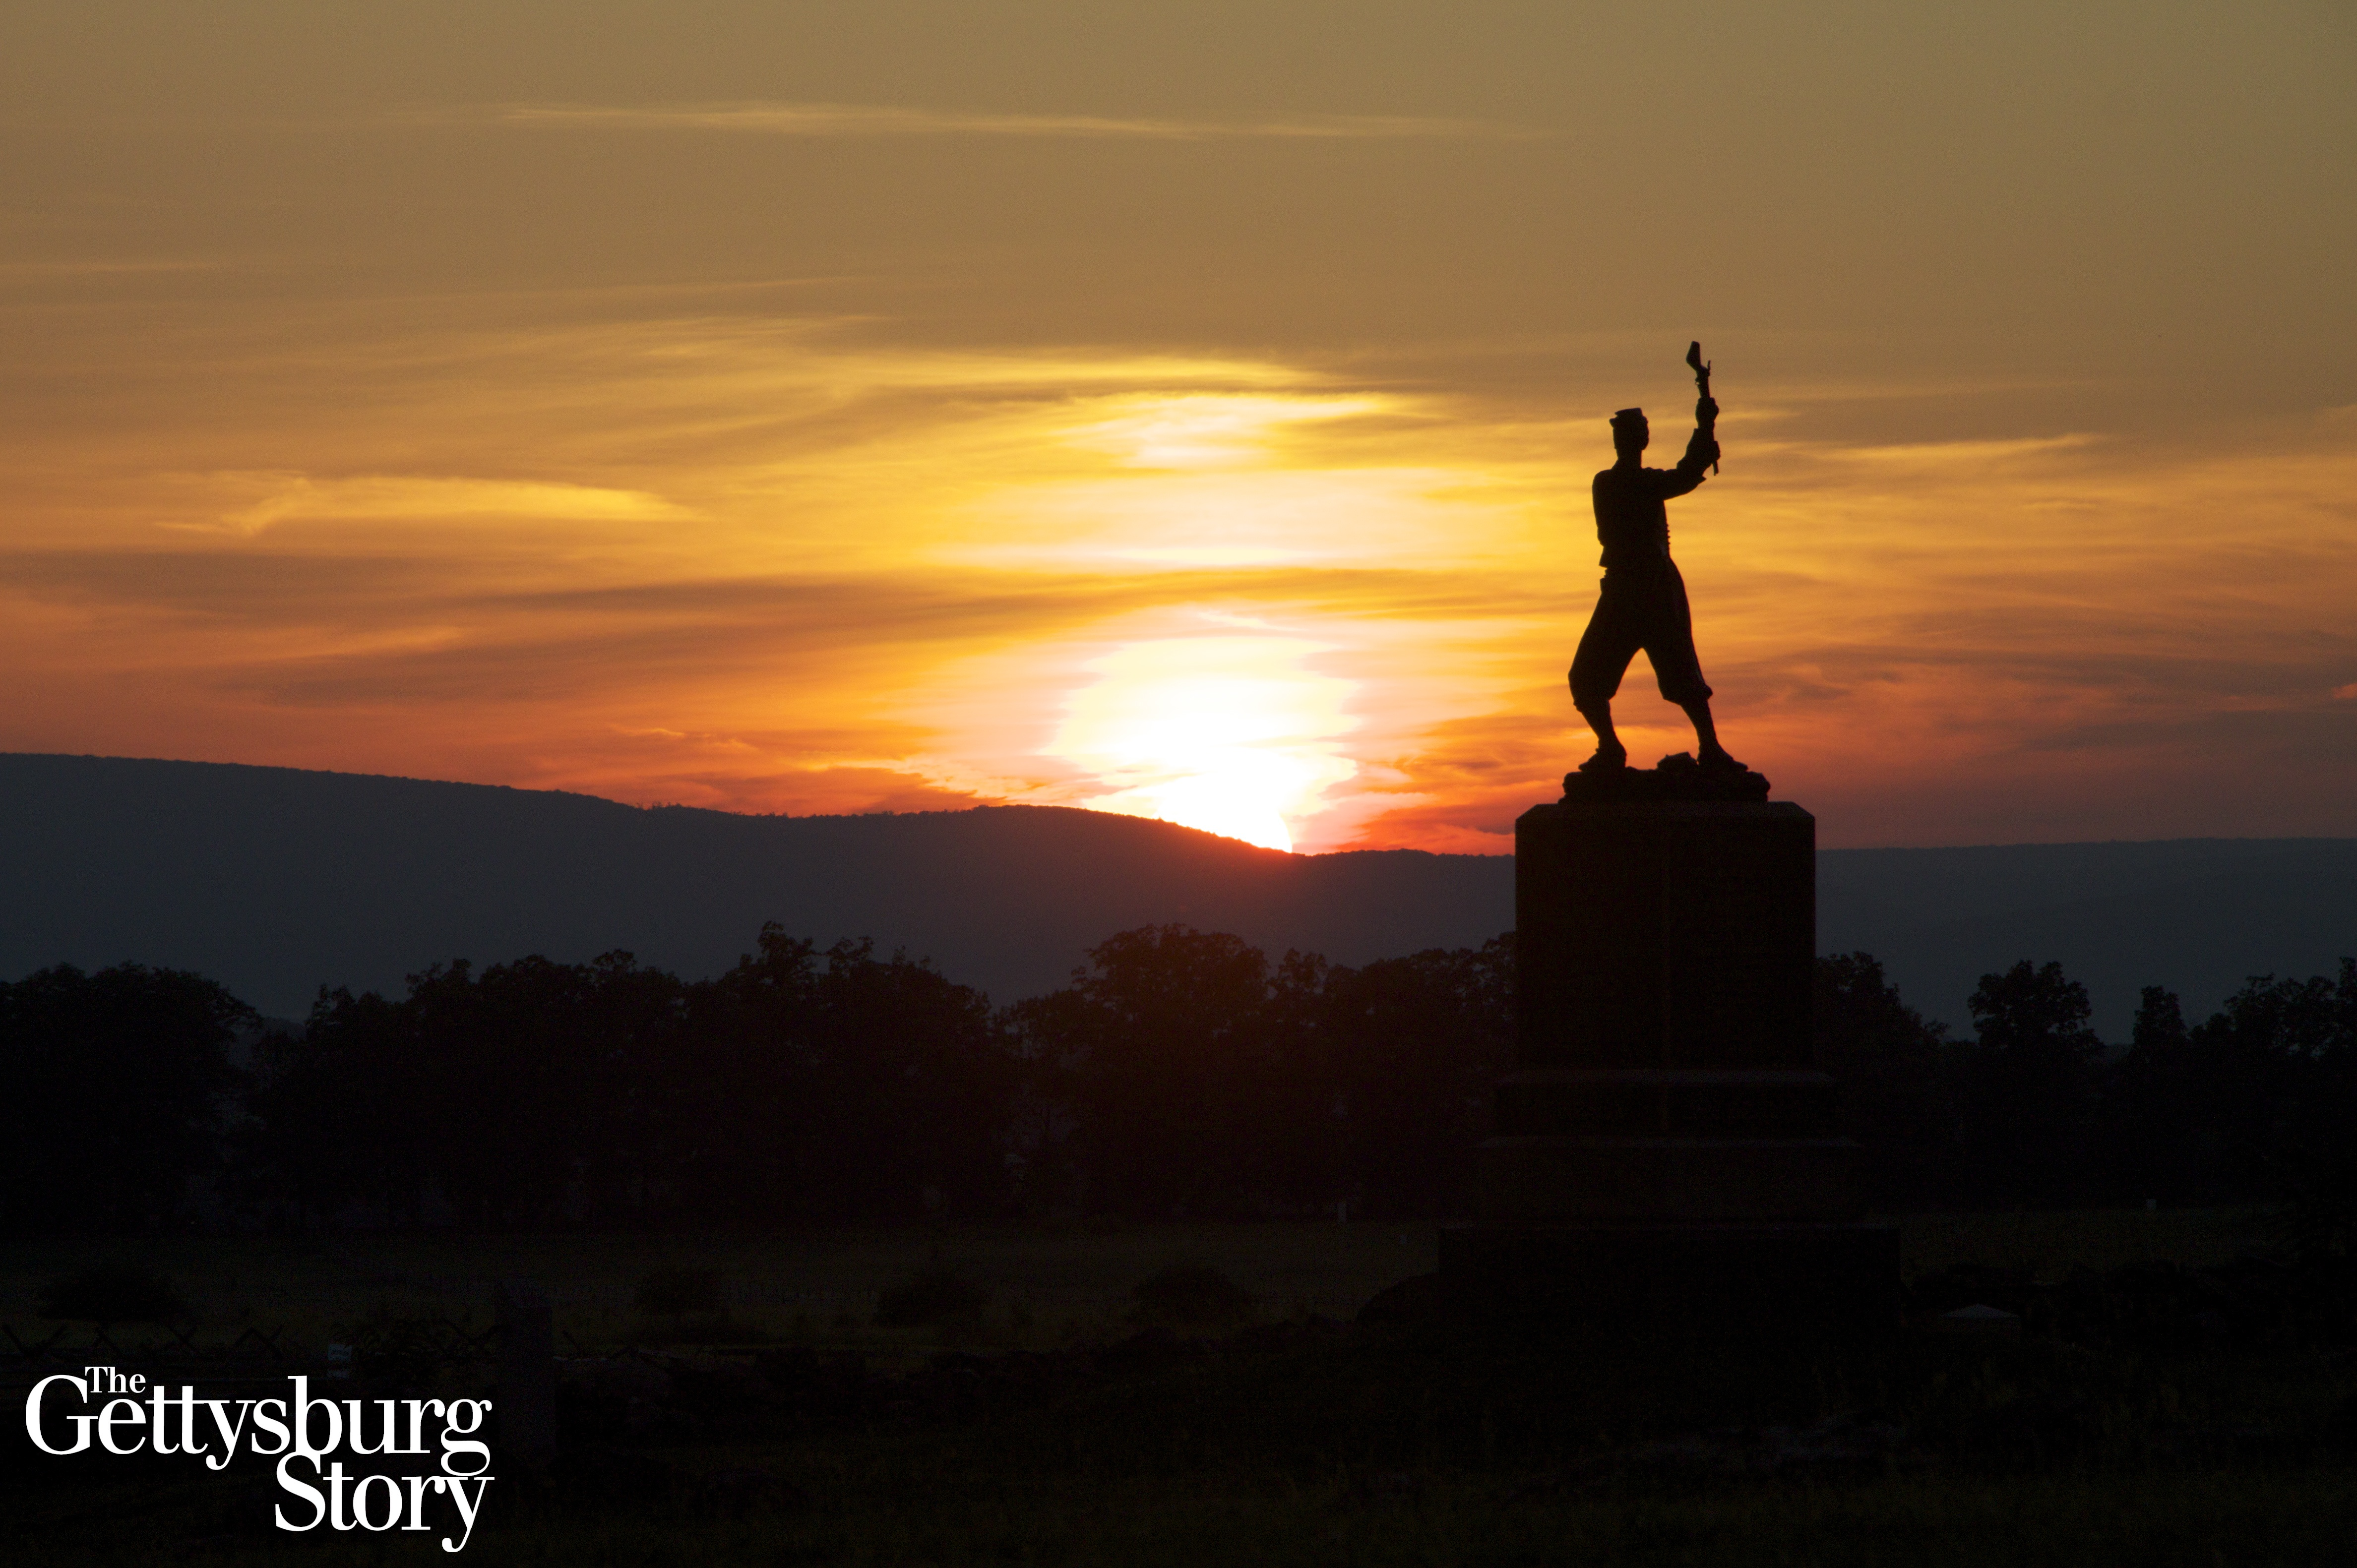 The Gettysburg Story | Station Relations | MPT